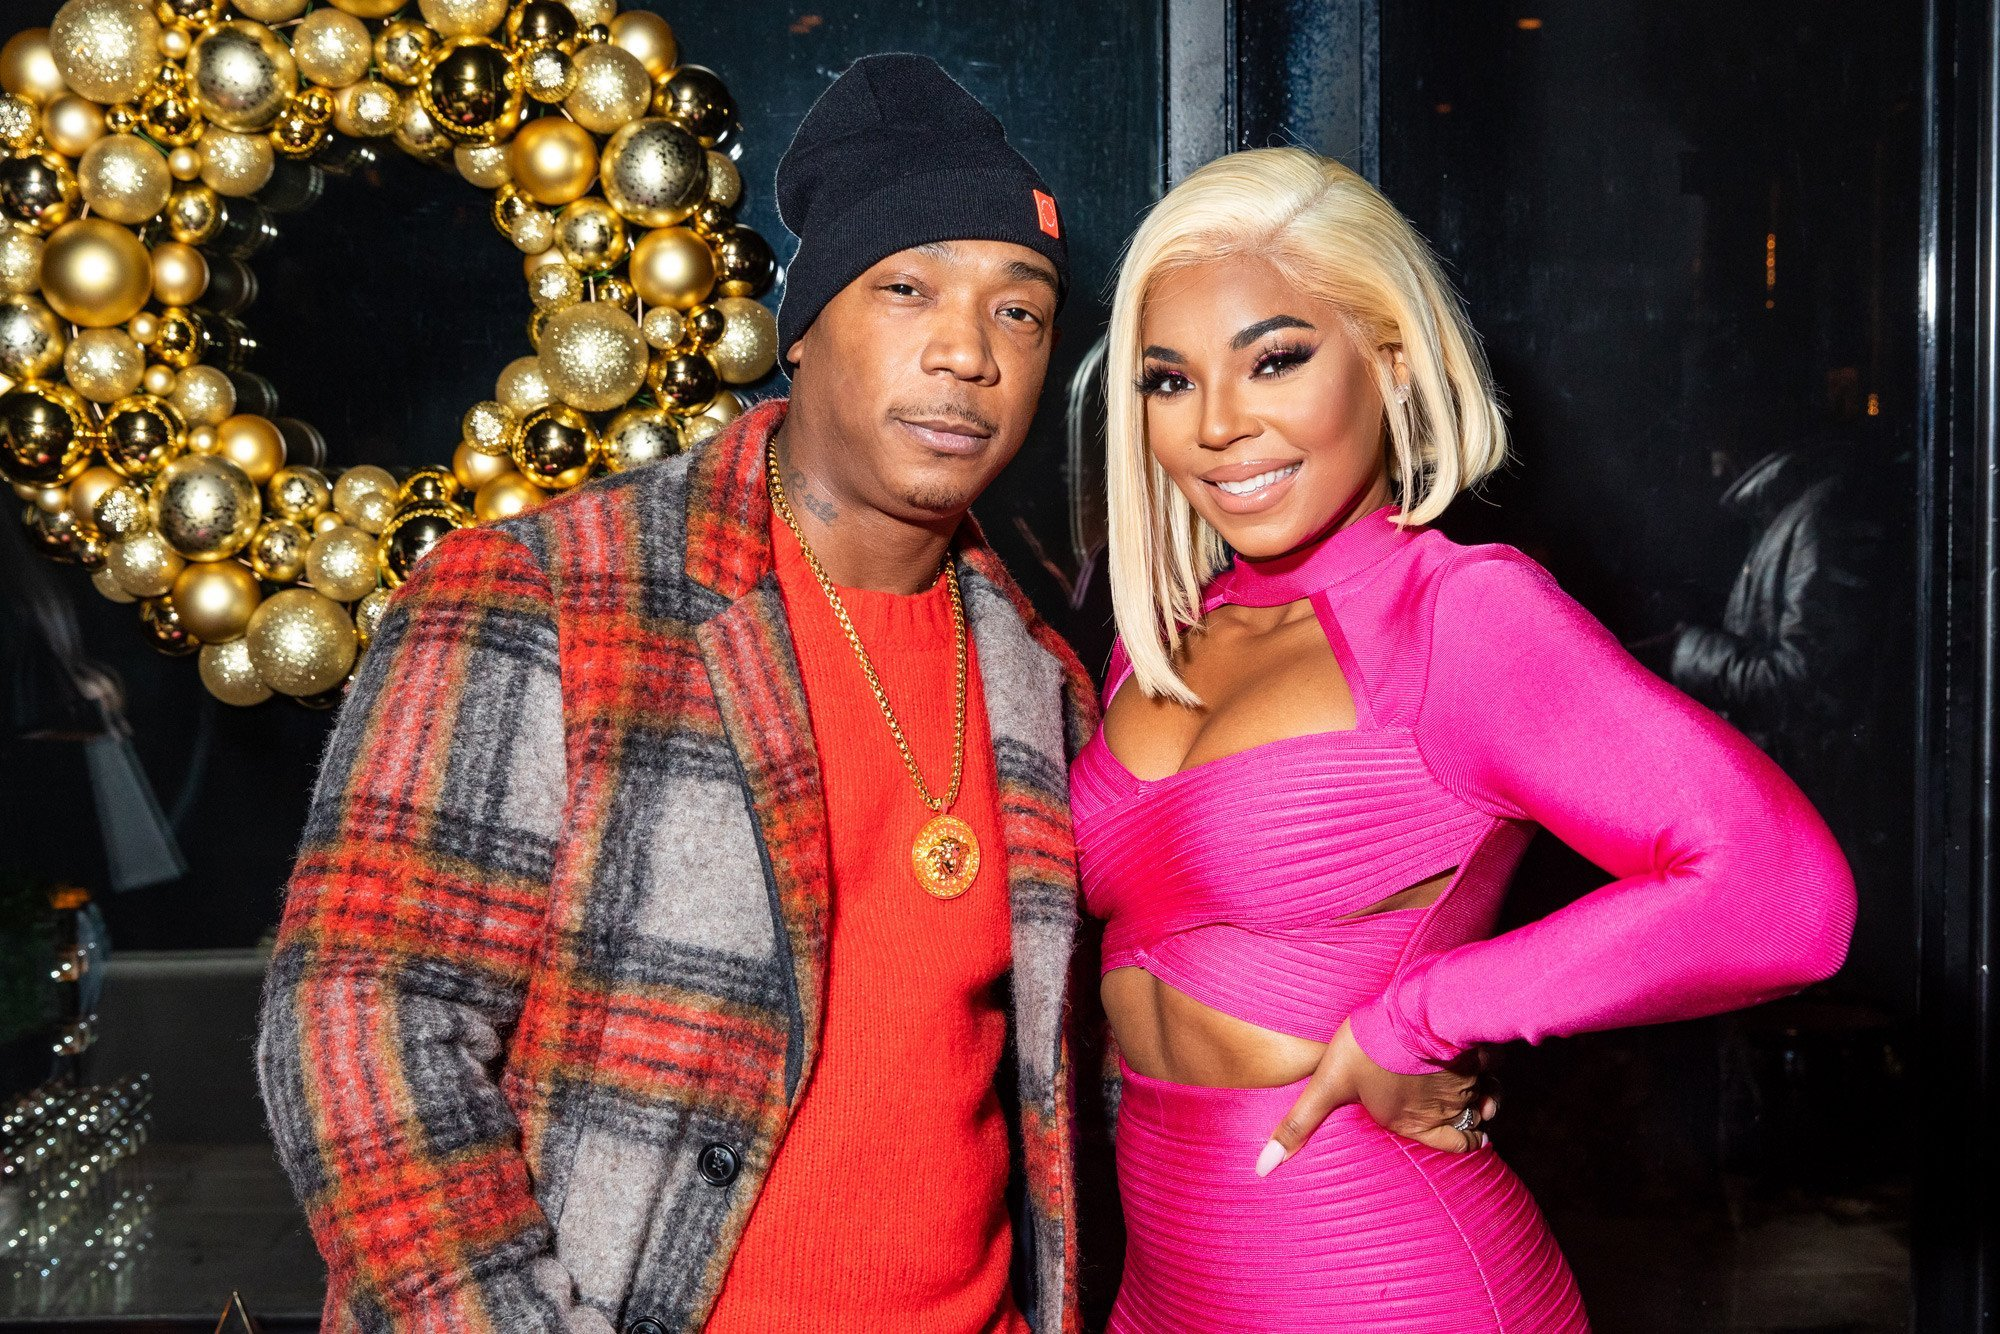 Ja Rule supports Ashanti at party amid joint album talk